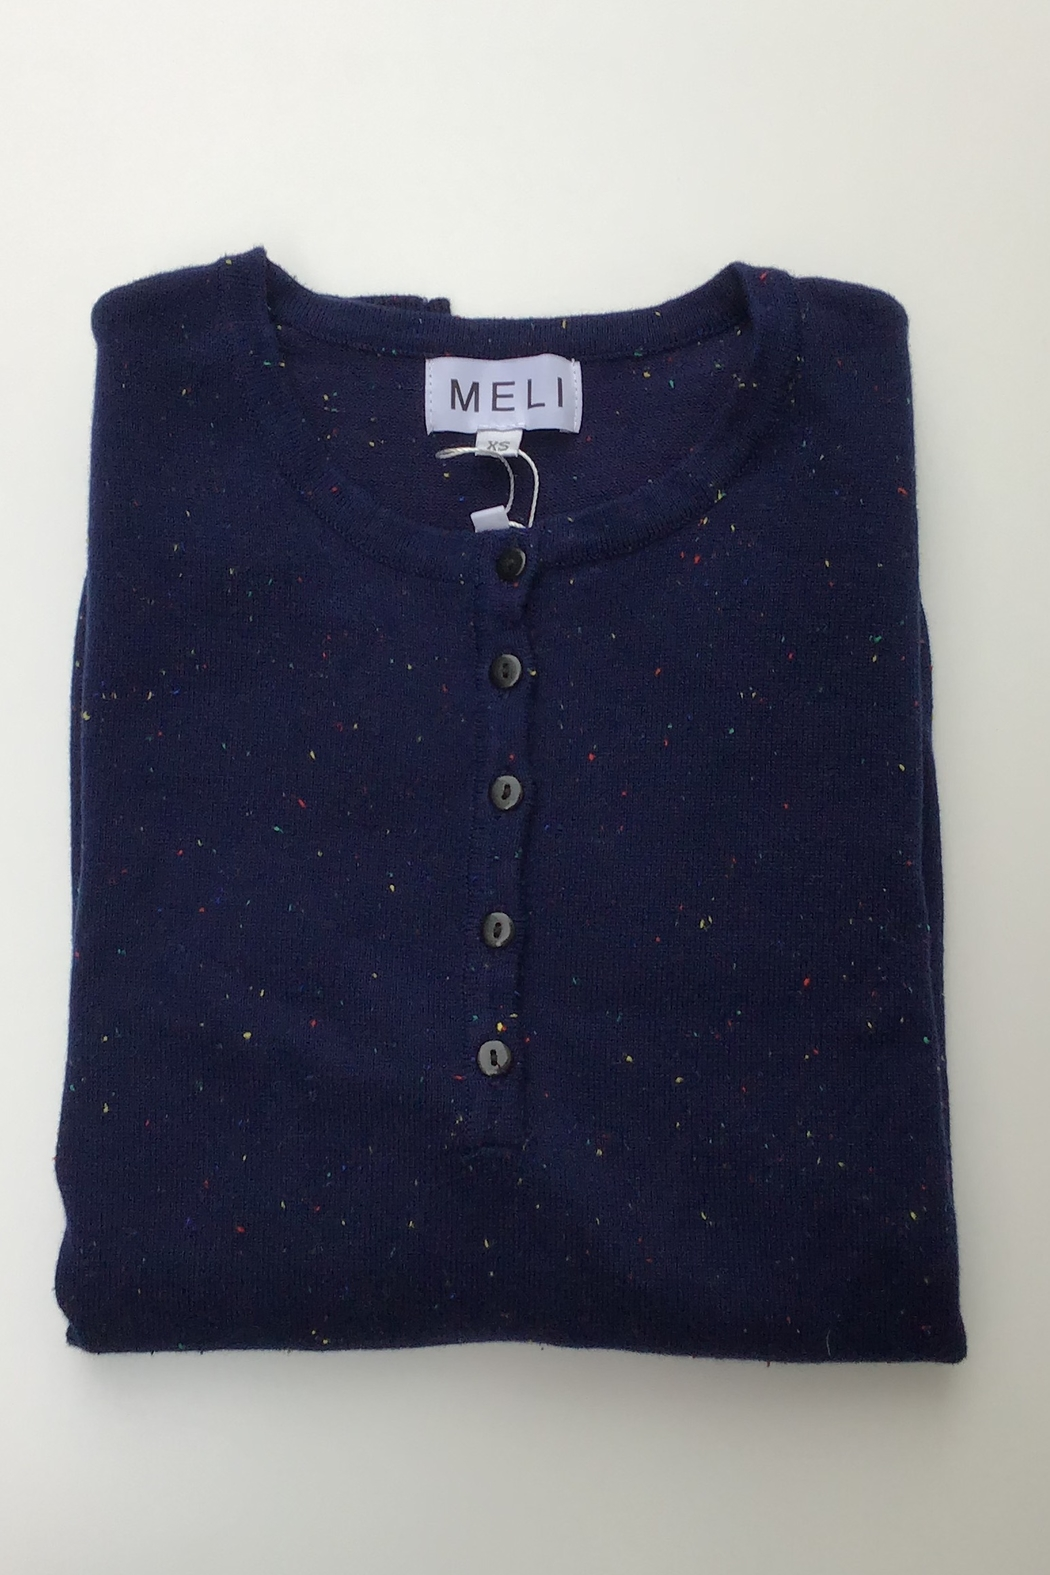 Meli by FAME HENLEY SPECKLED SWEATER - Front Cropped Image